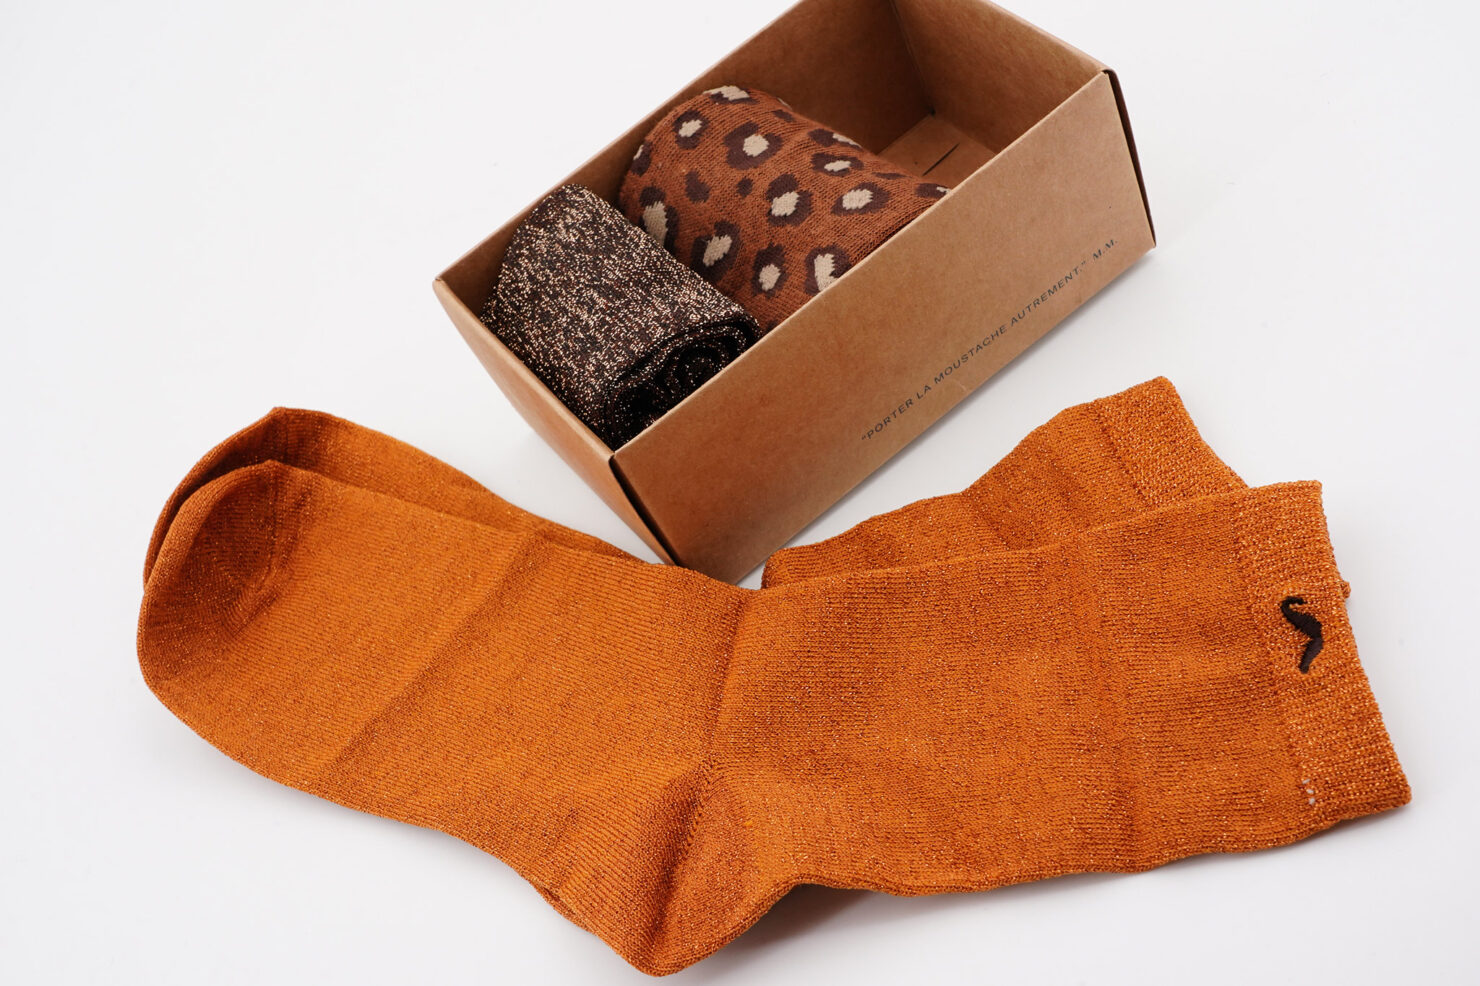 PACK OF 3 SOCKS - PAILLETTES AND BROWN LEOPARD- M. MOUSTACHE